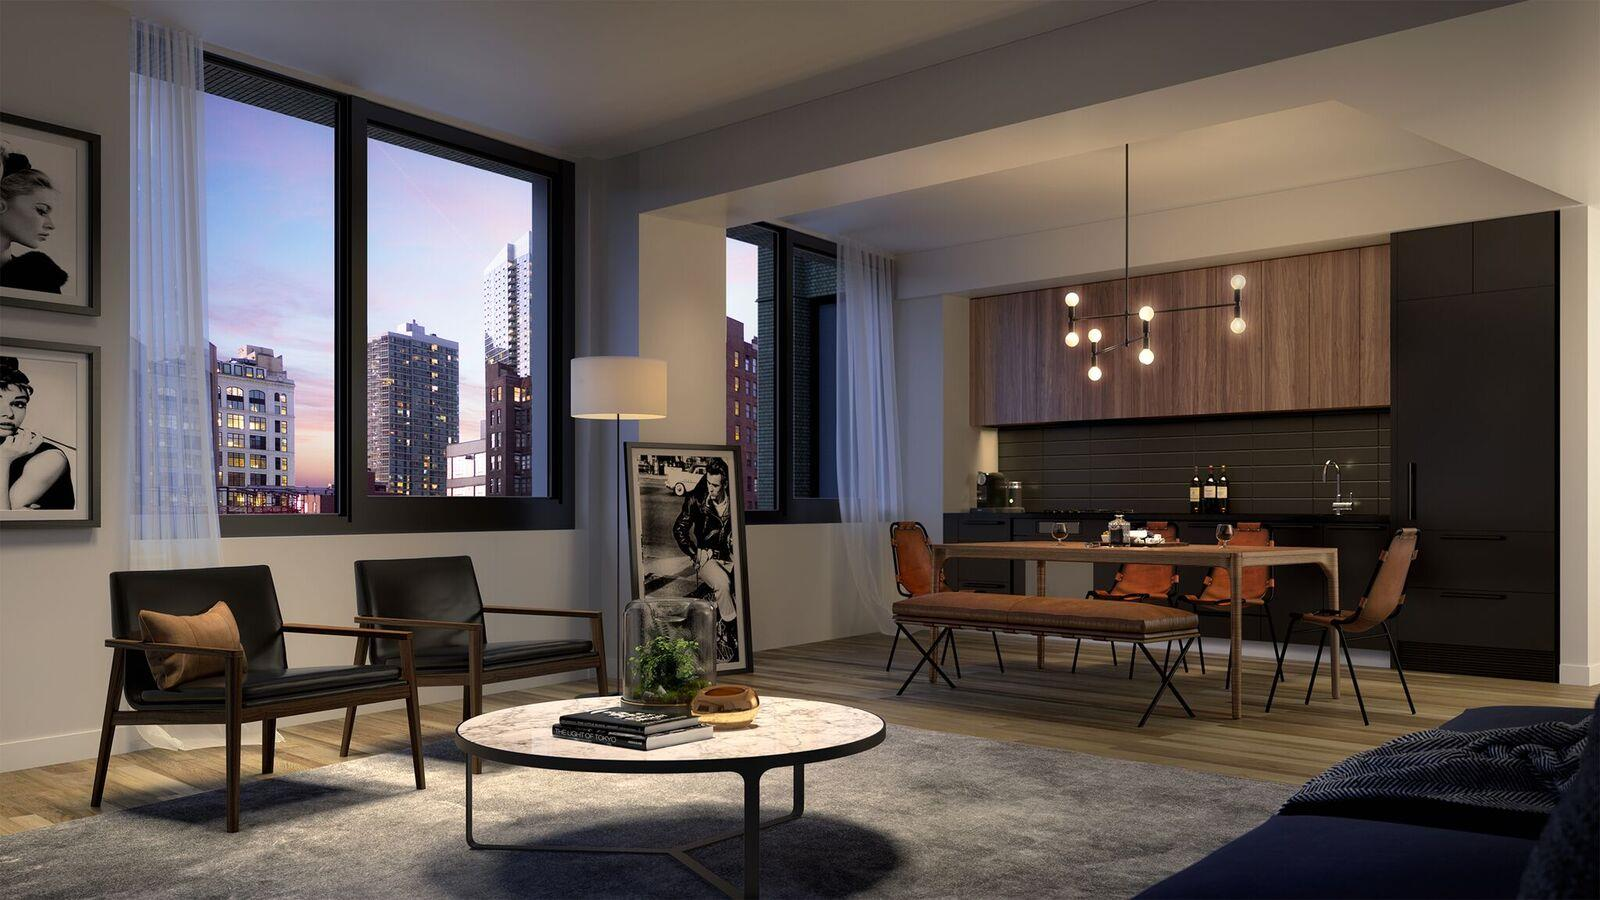 411 West 35th St, 5A1 - Midtown, New York